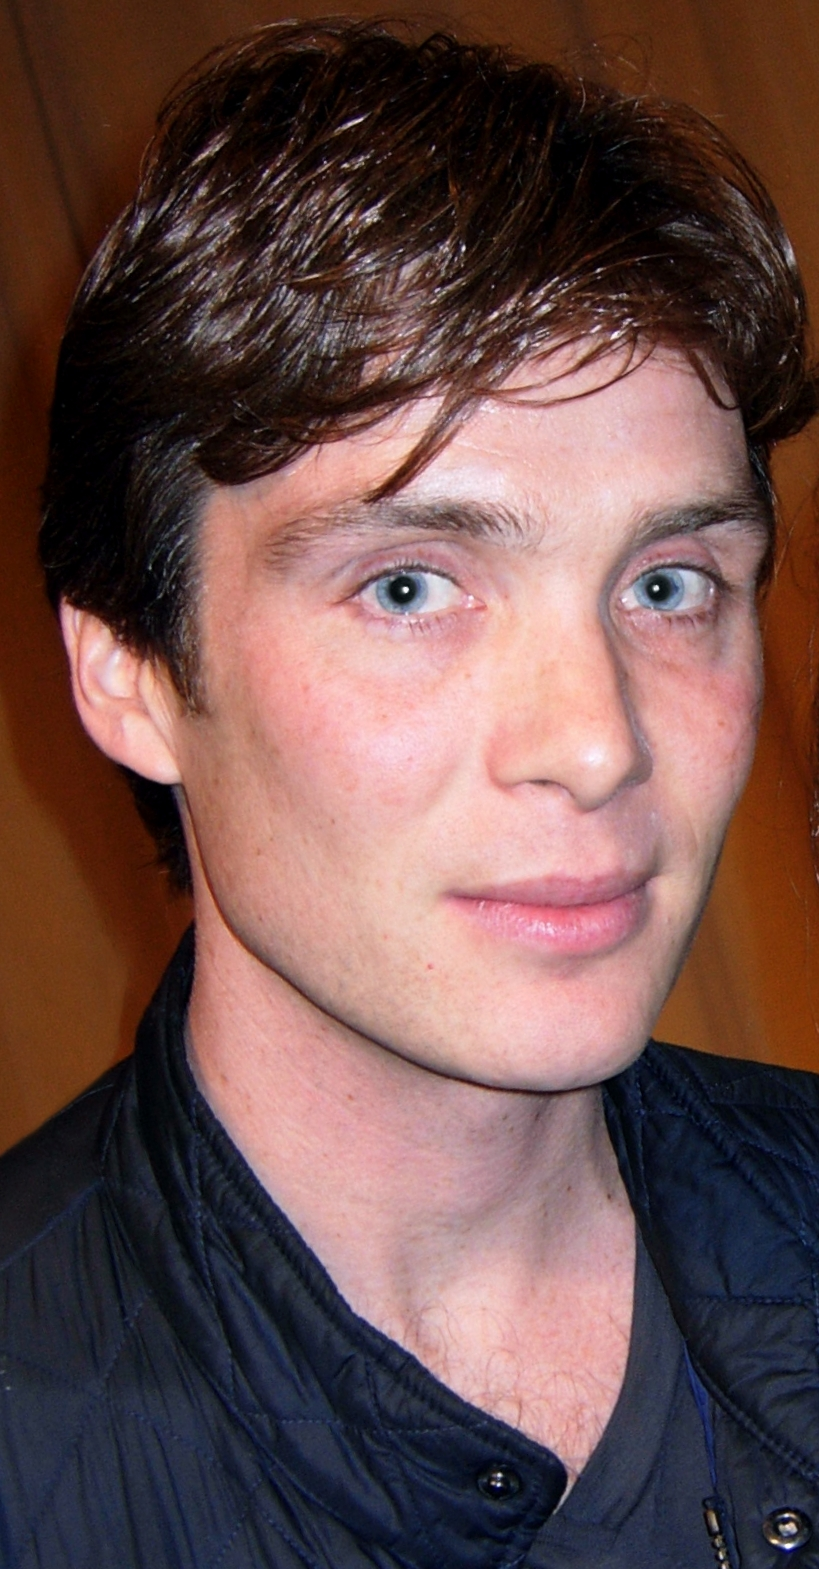 cillian murphy tumblr